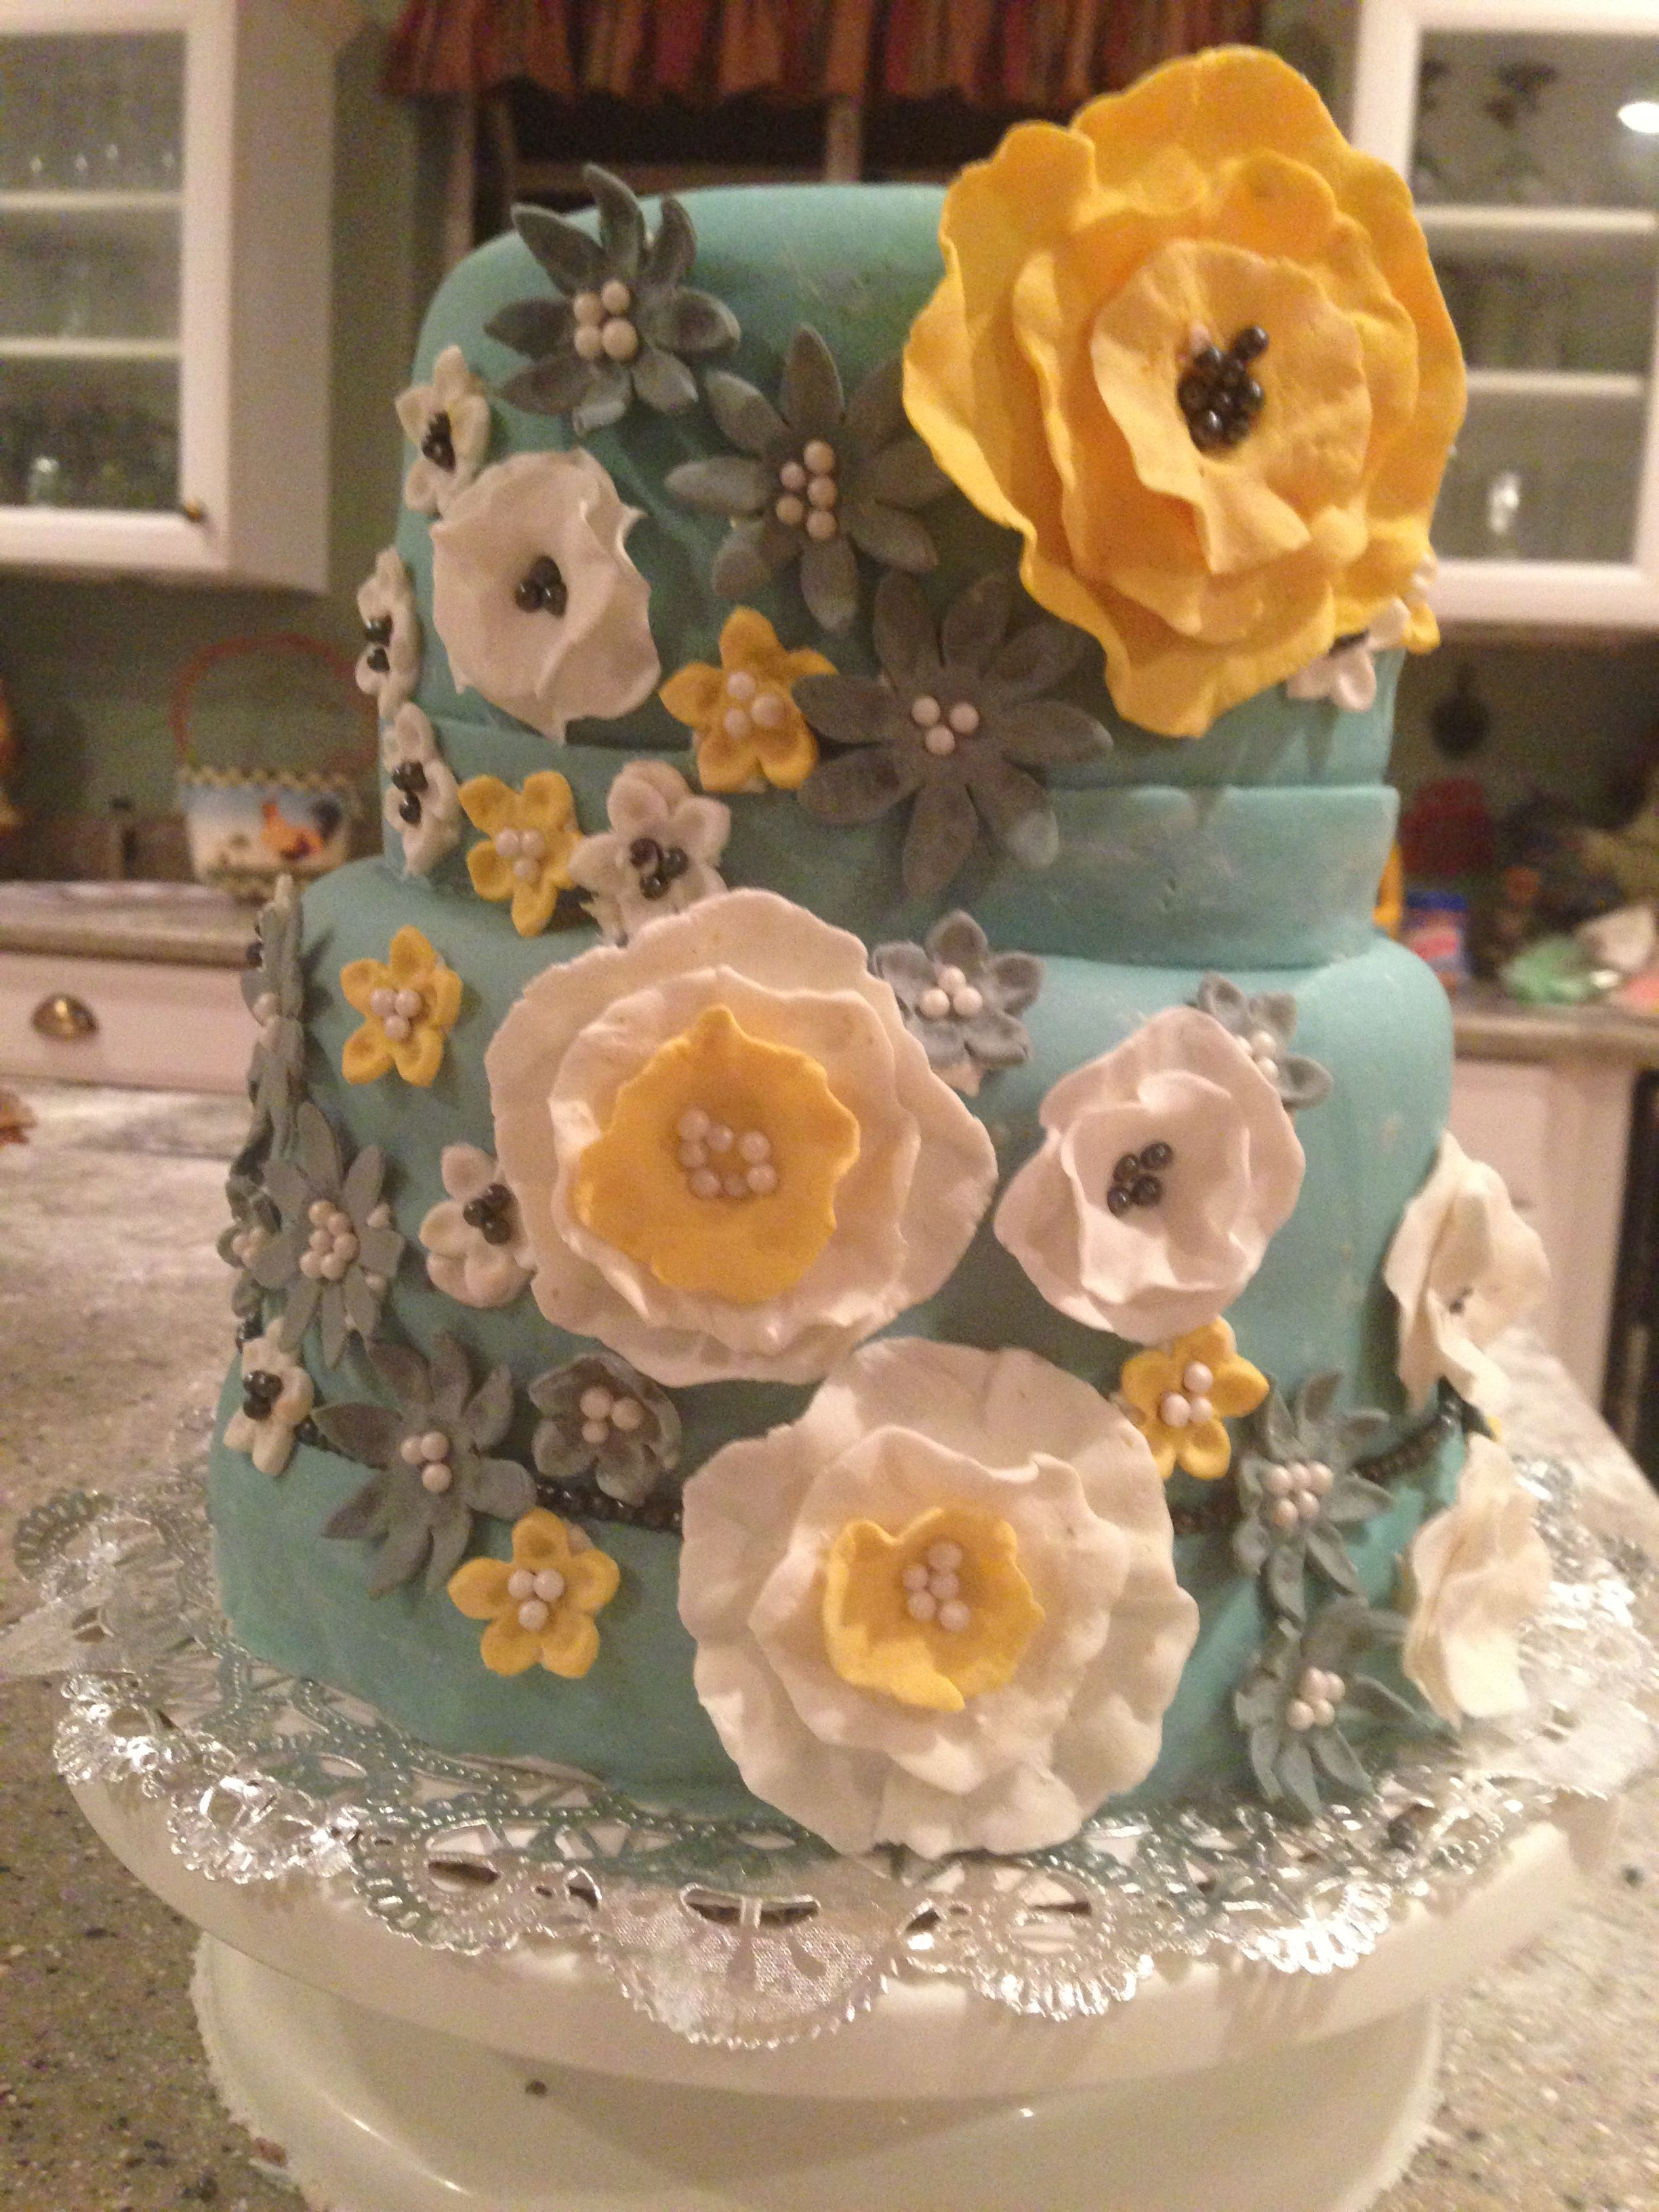 Teal and yellow wedding cake like the idea but a little less going on